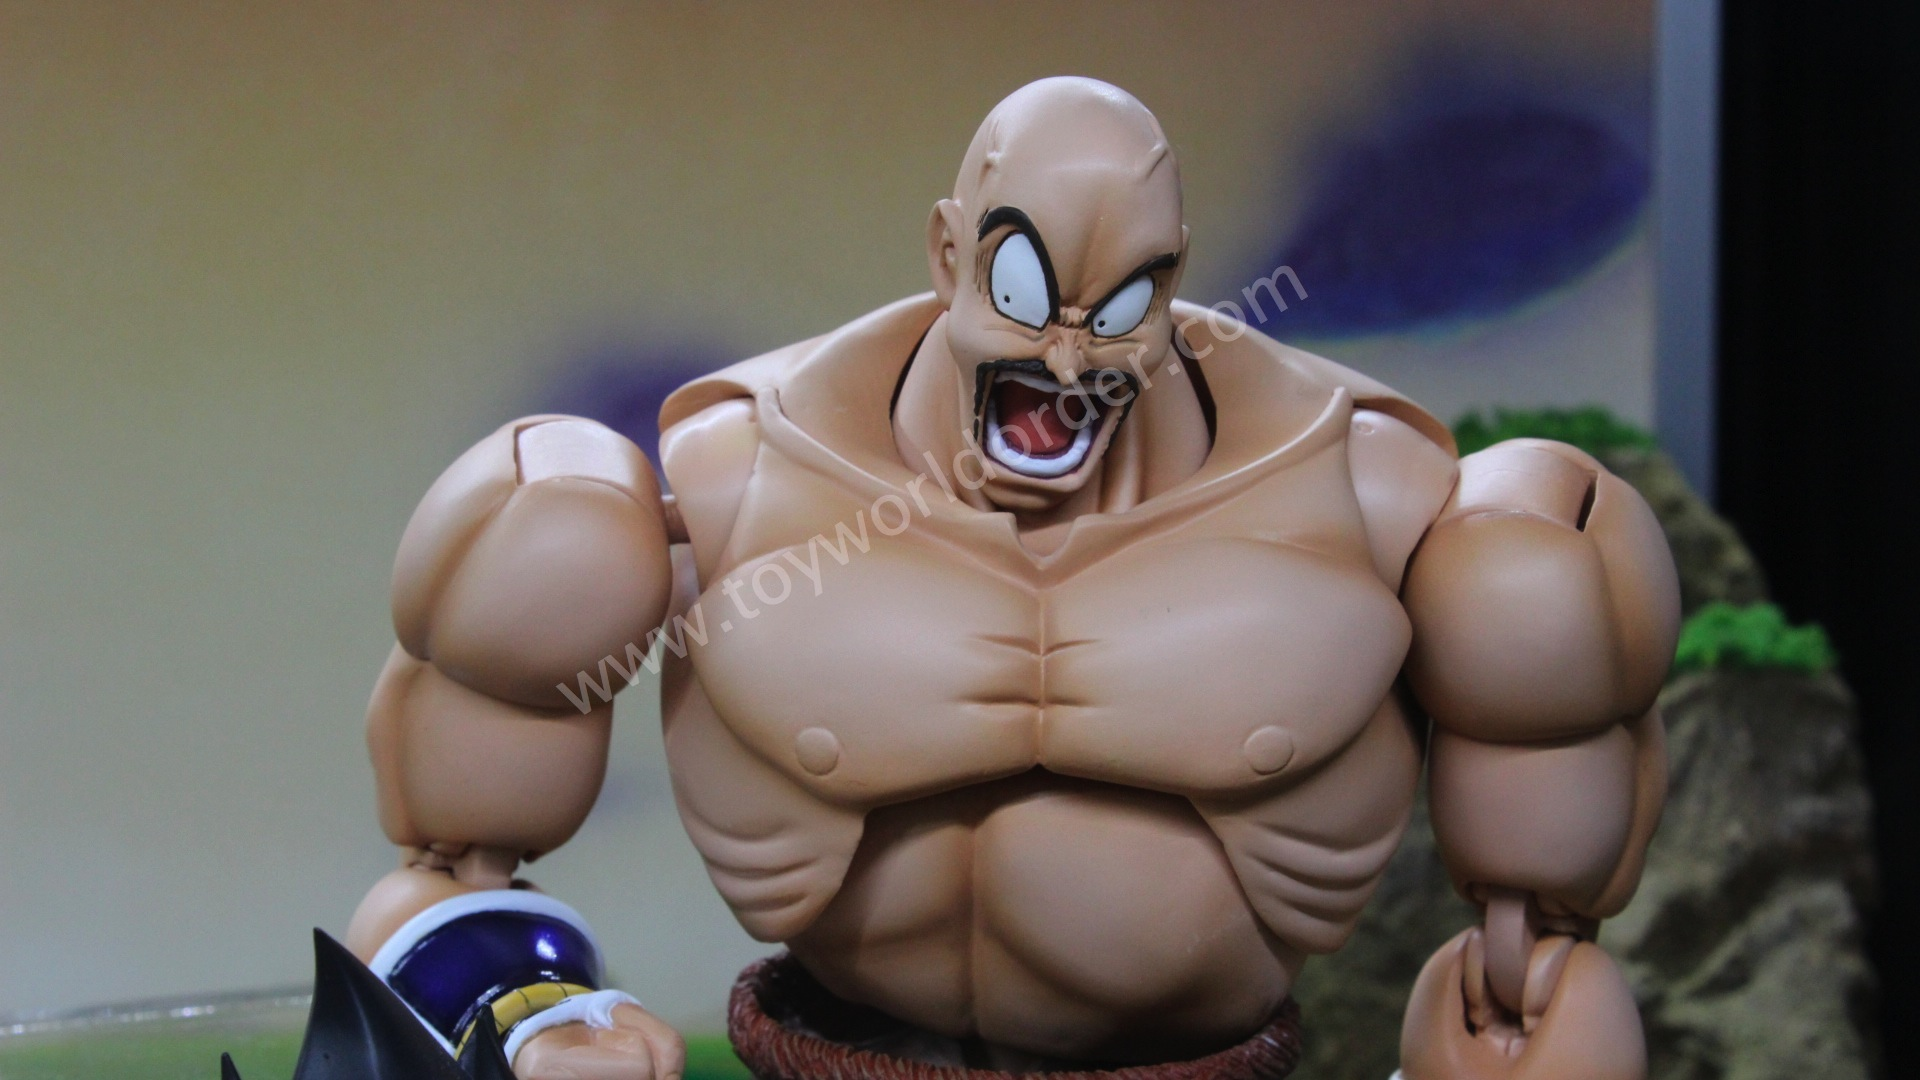 [S.H.Figuarts] Dragon Ball Z - Pagina 2 717687img6554wm